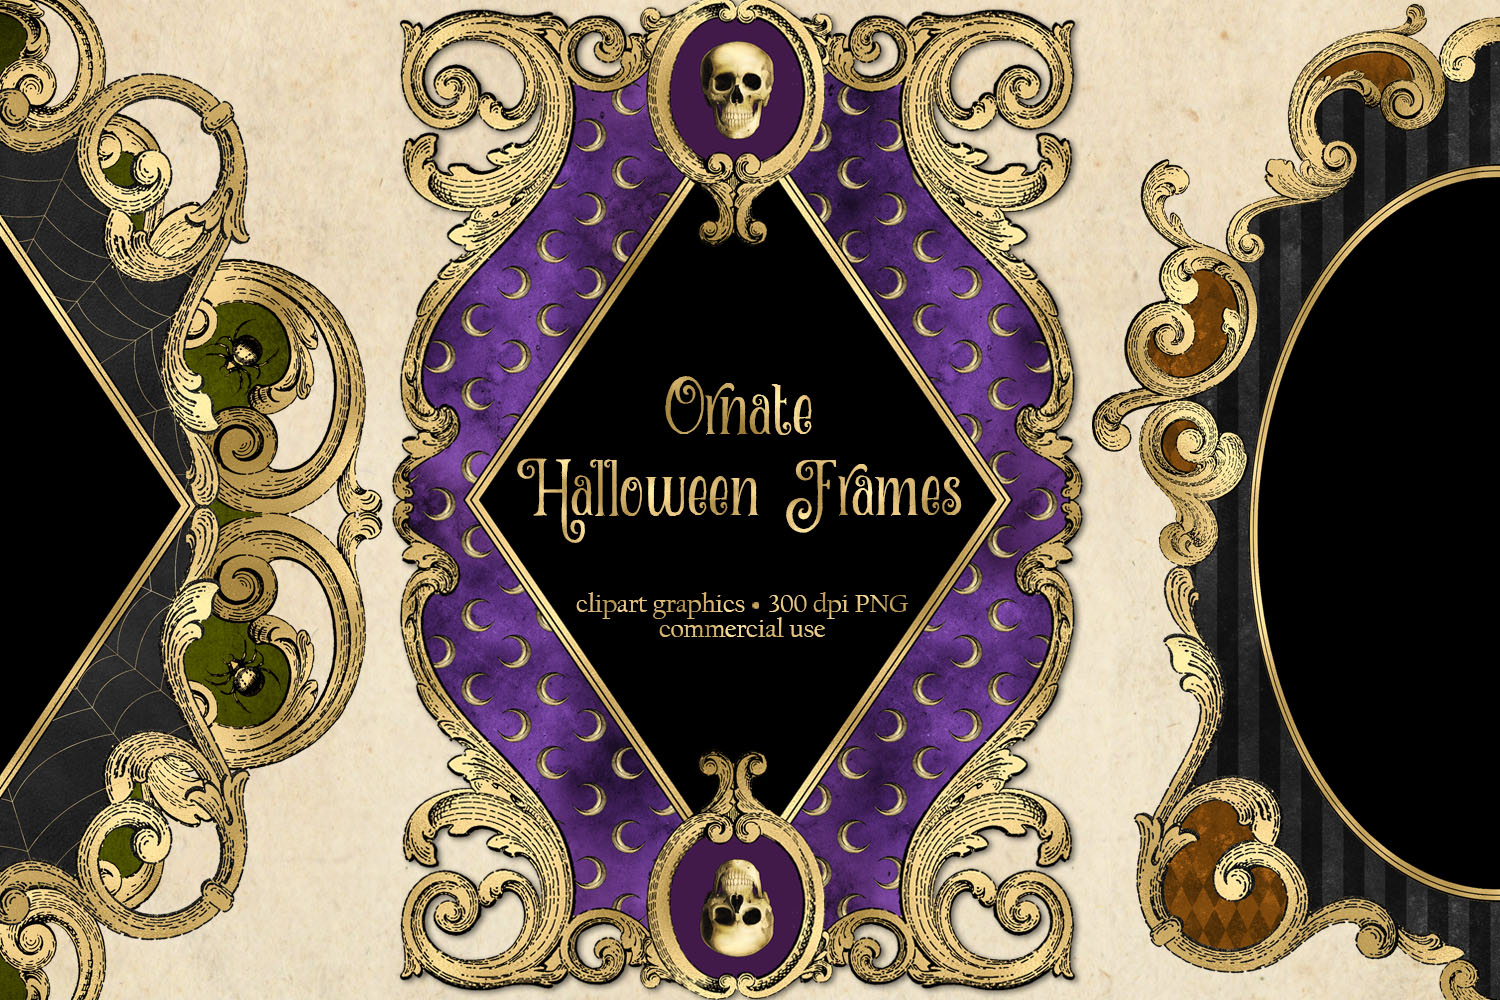 Ornate Halloween Frames Clipart example image 1